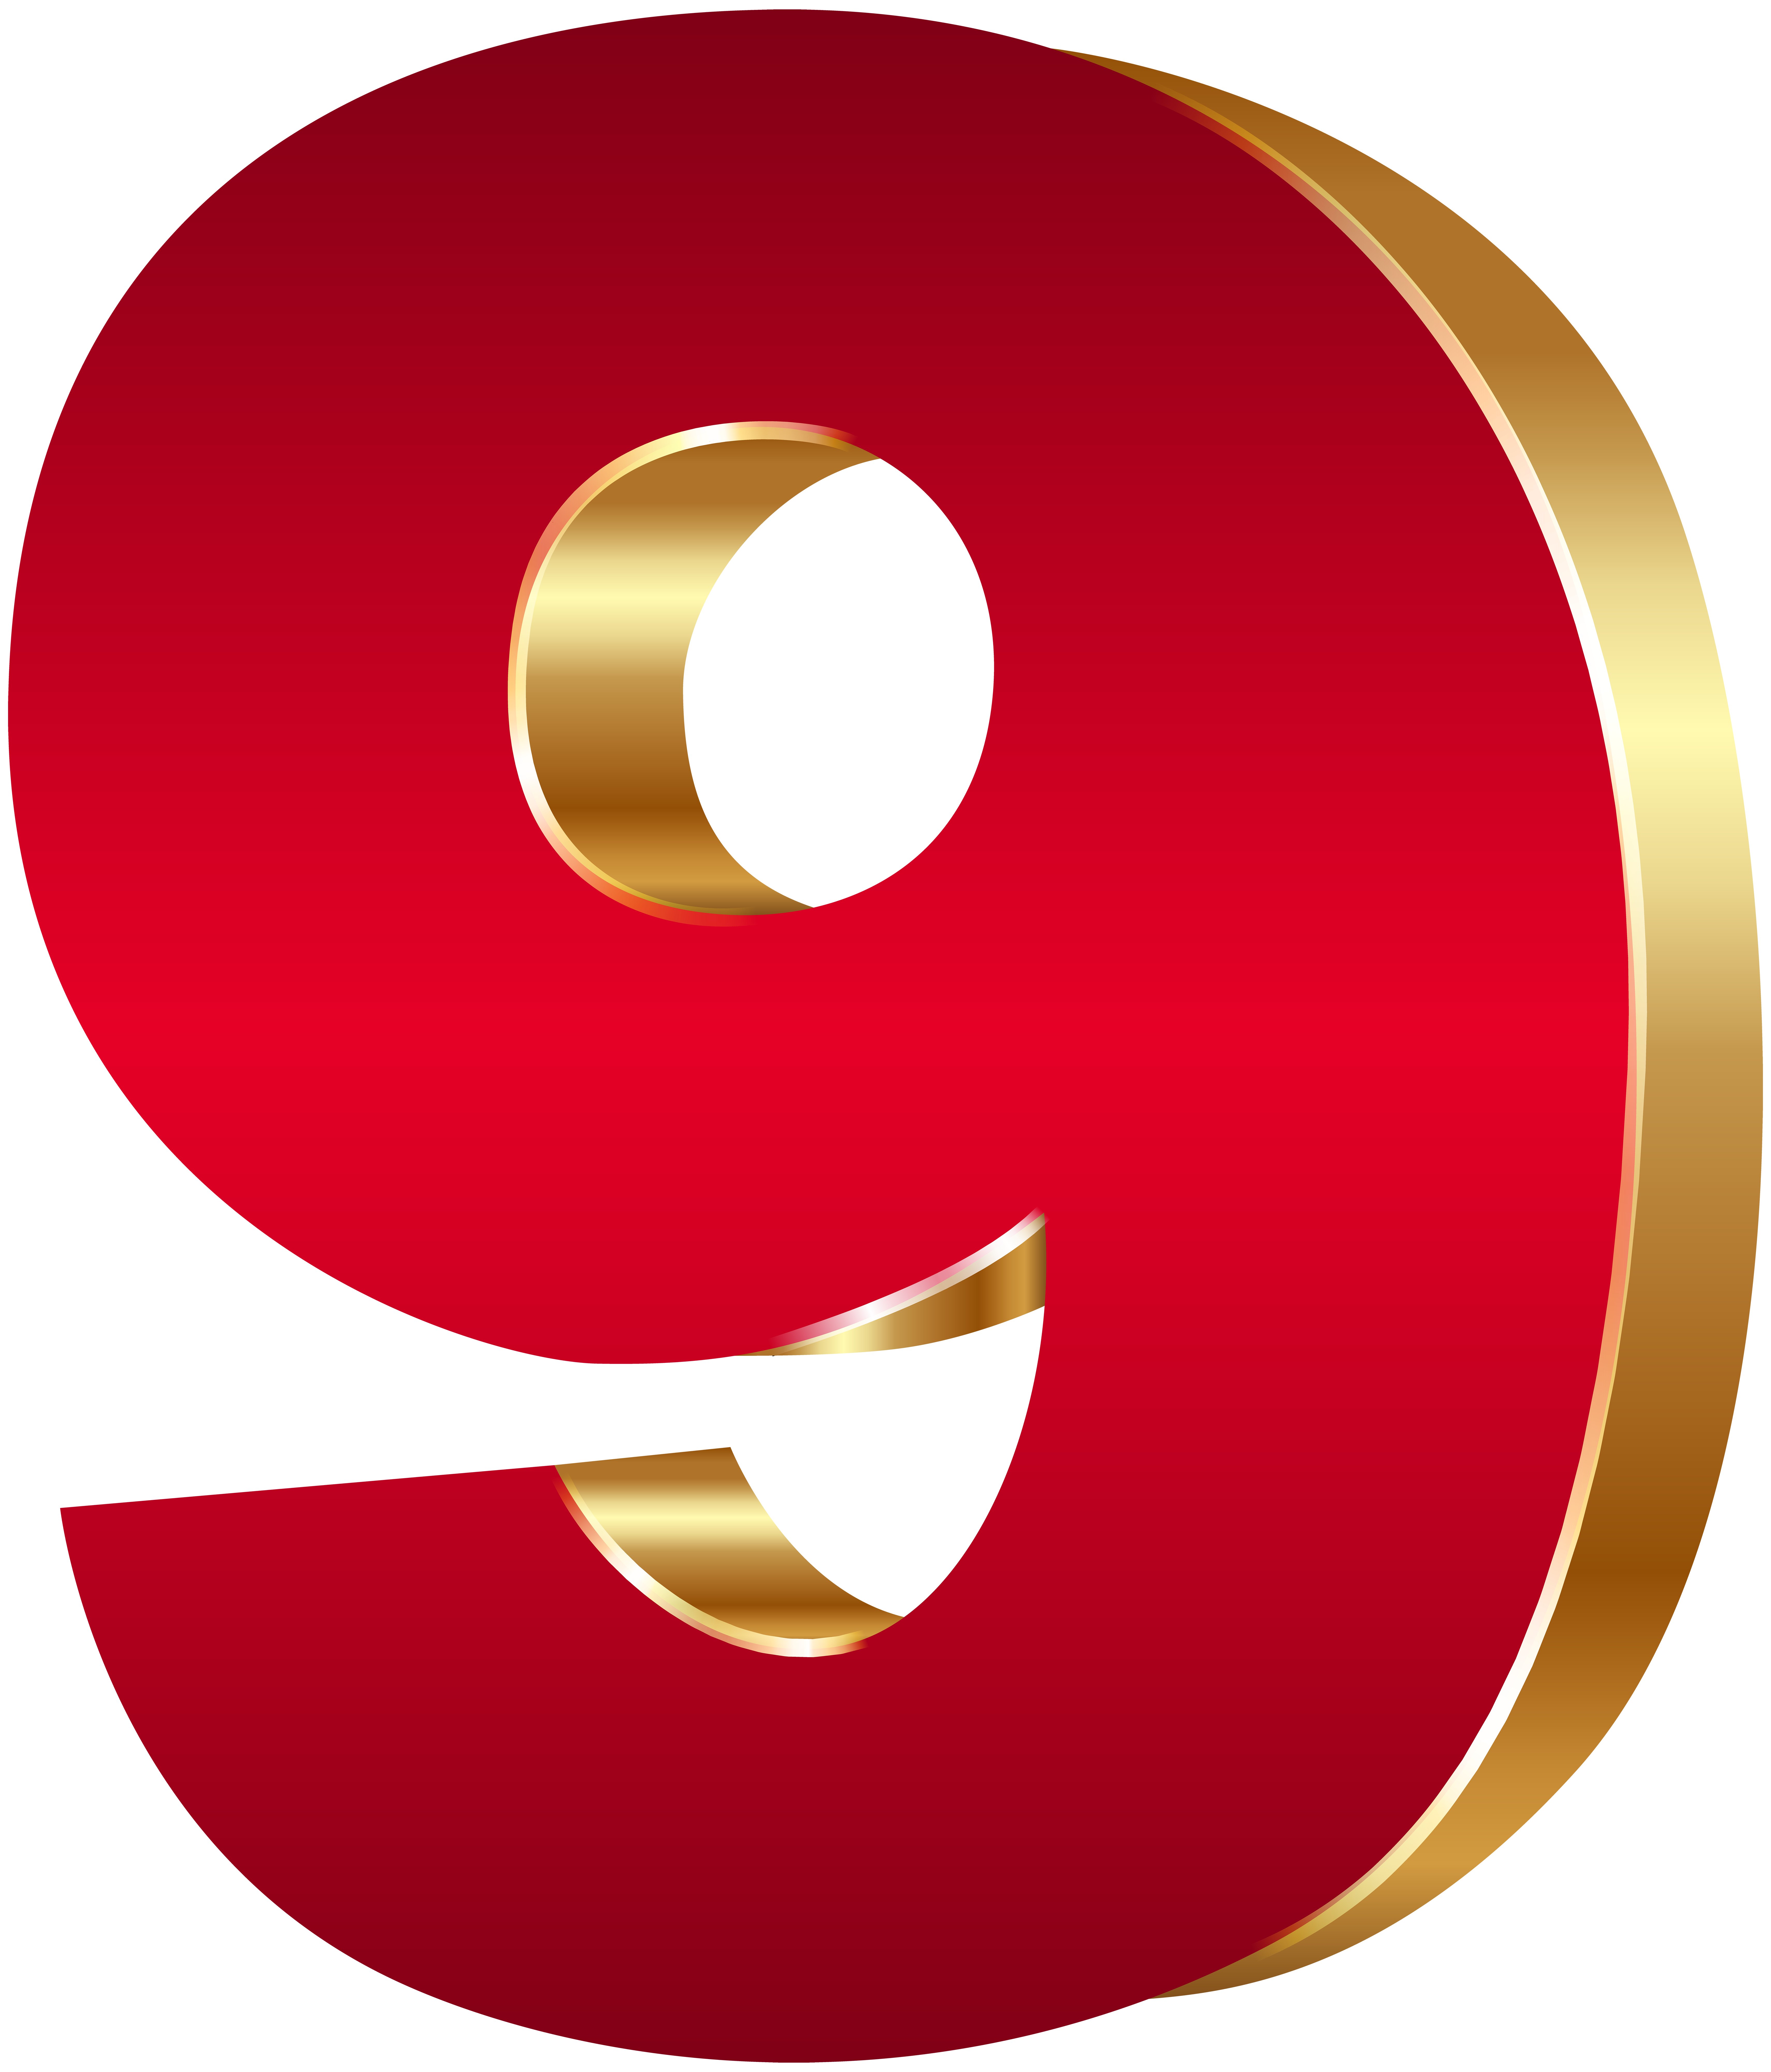 Number nine clipart banner freeuse library 3D Number Nine Red Gold PNG Clip Art Image | Gallery ... banner freeuse library